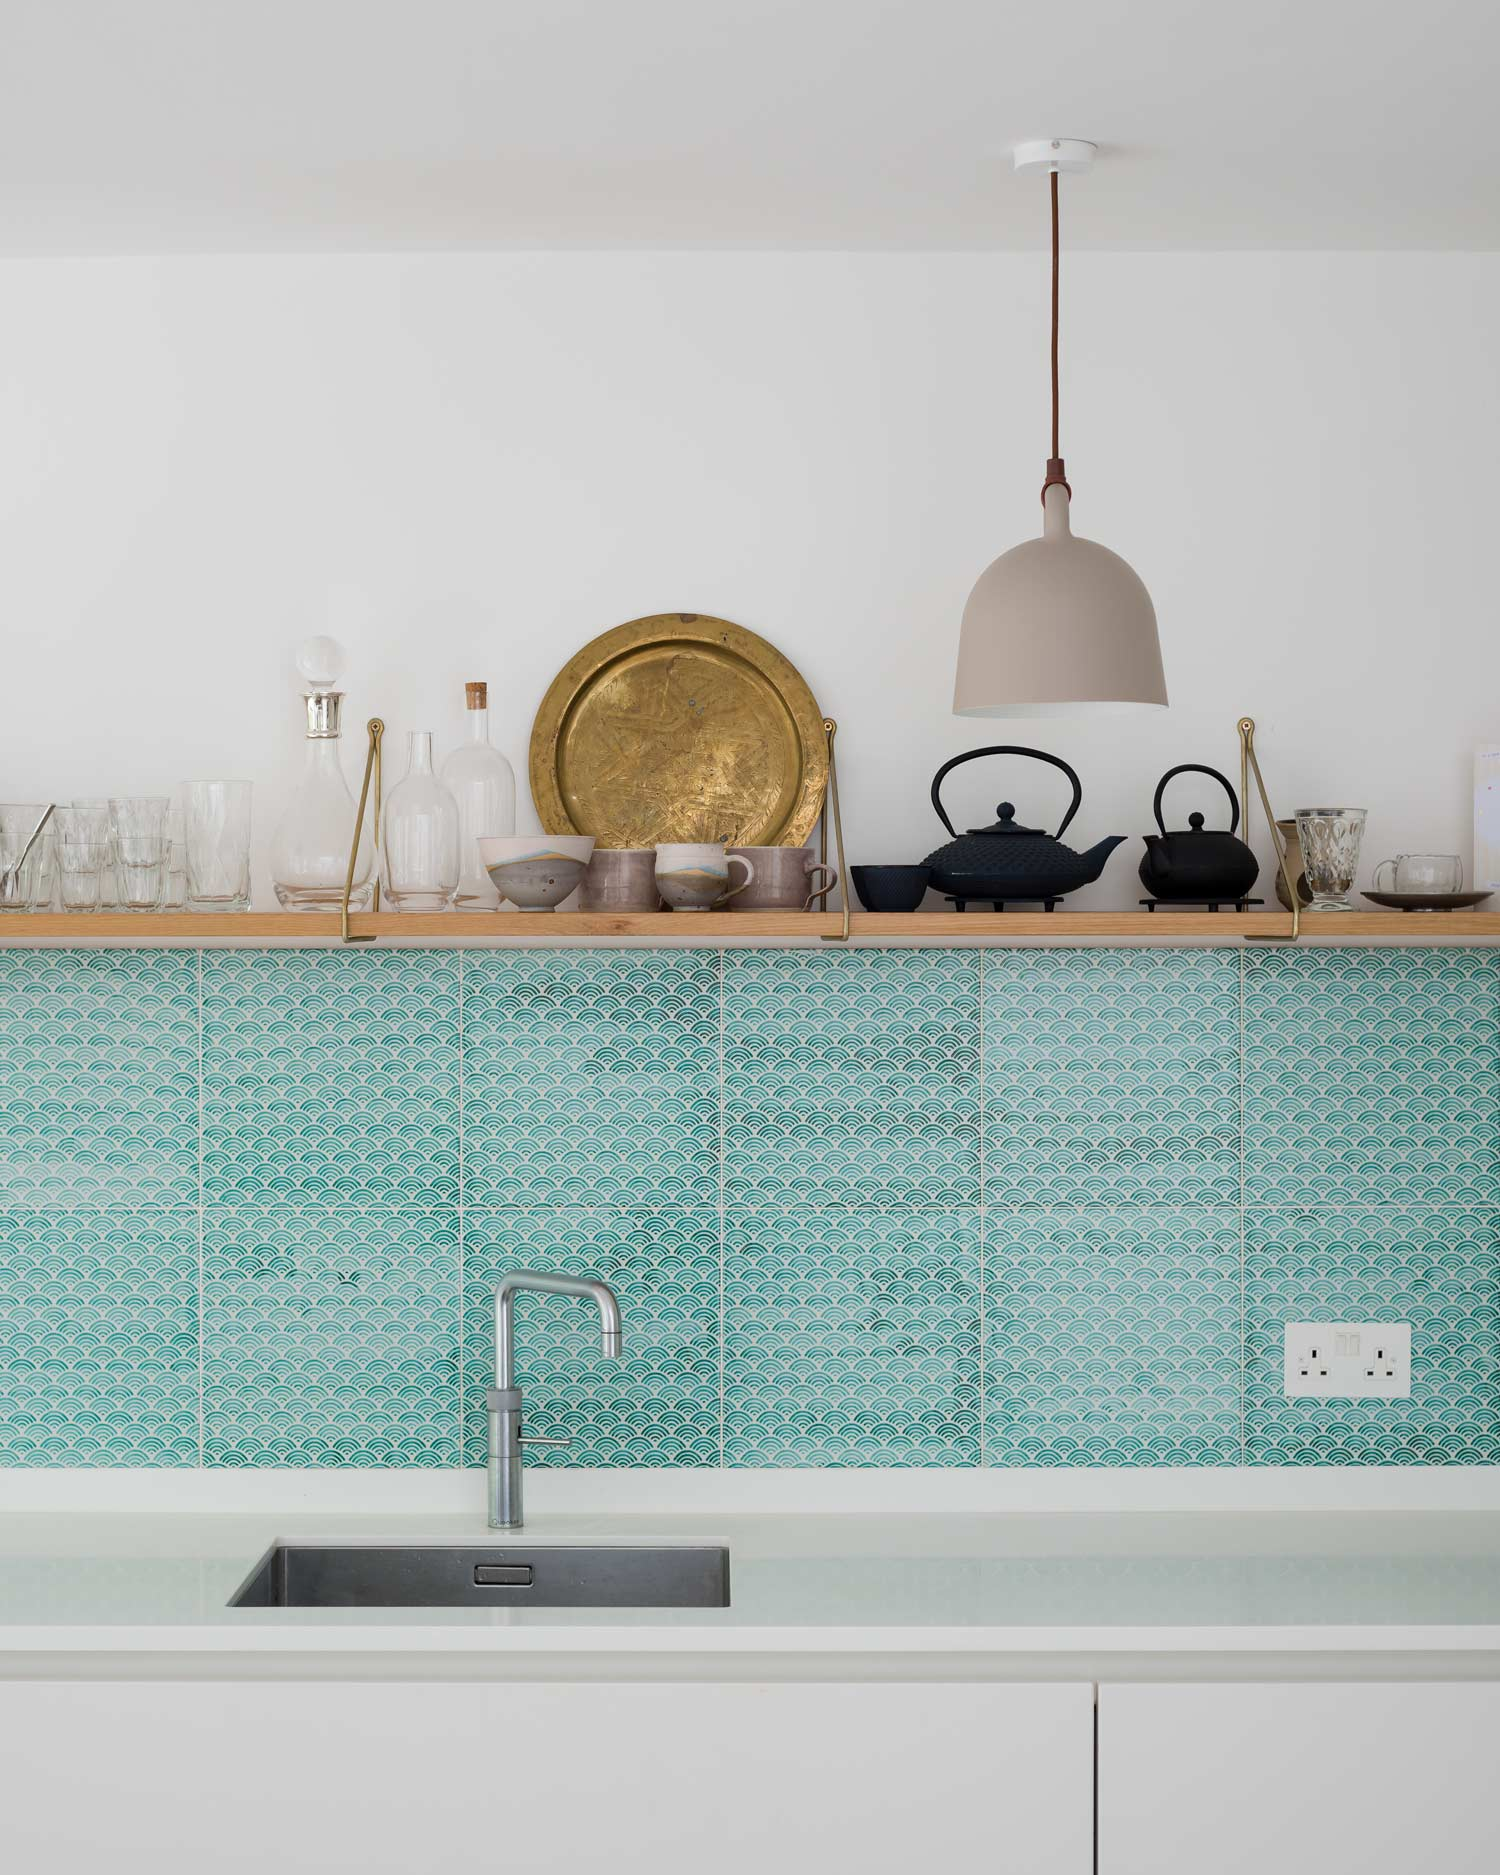 kitchen extensions in london: plywood kitchen